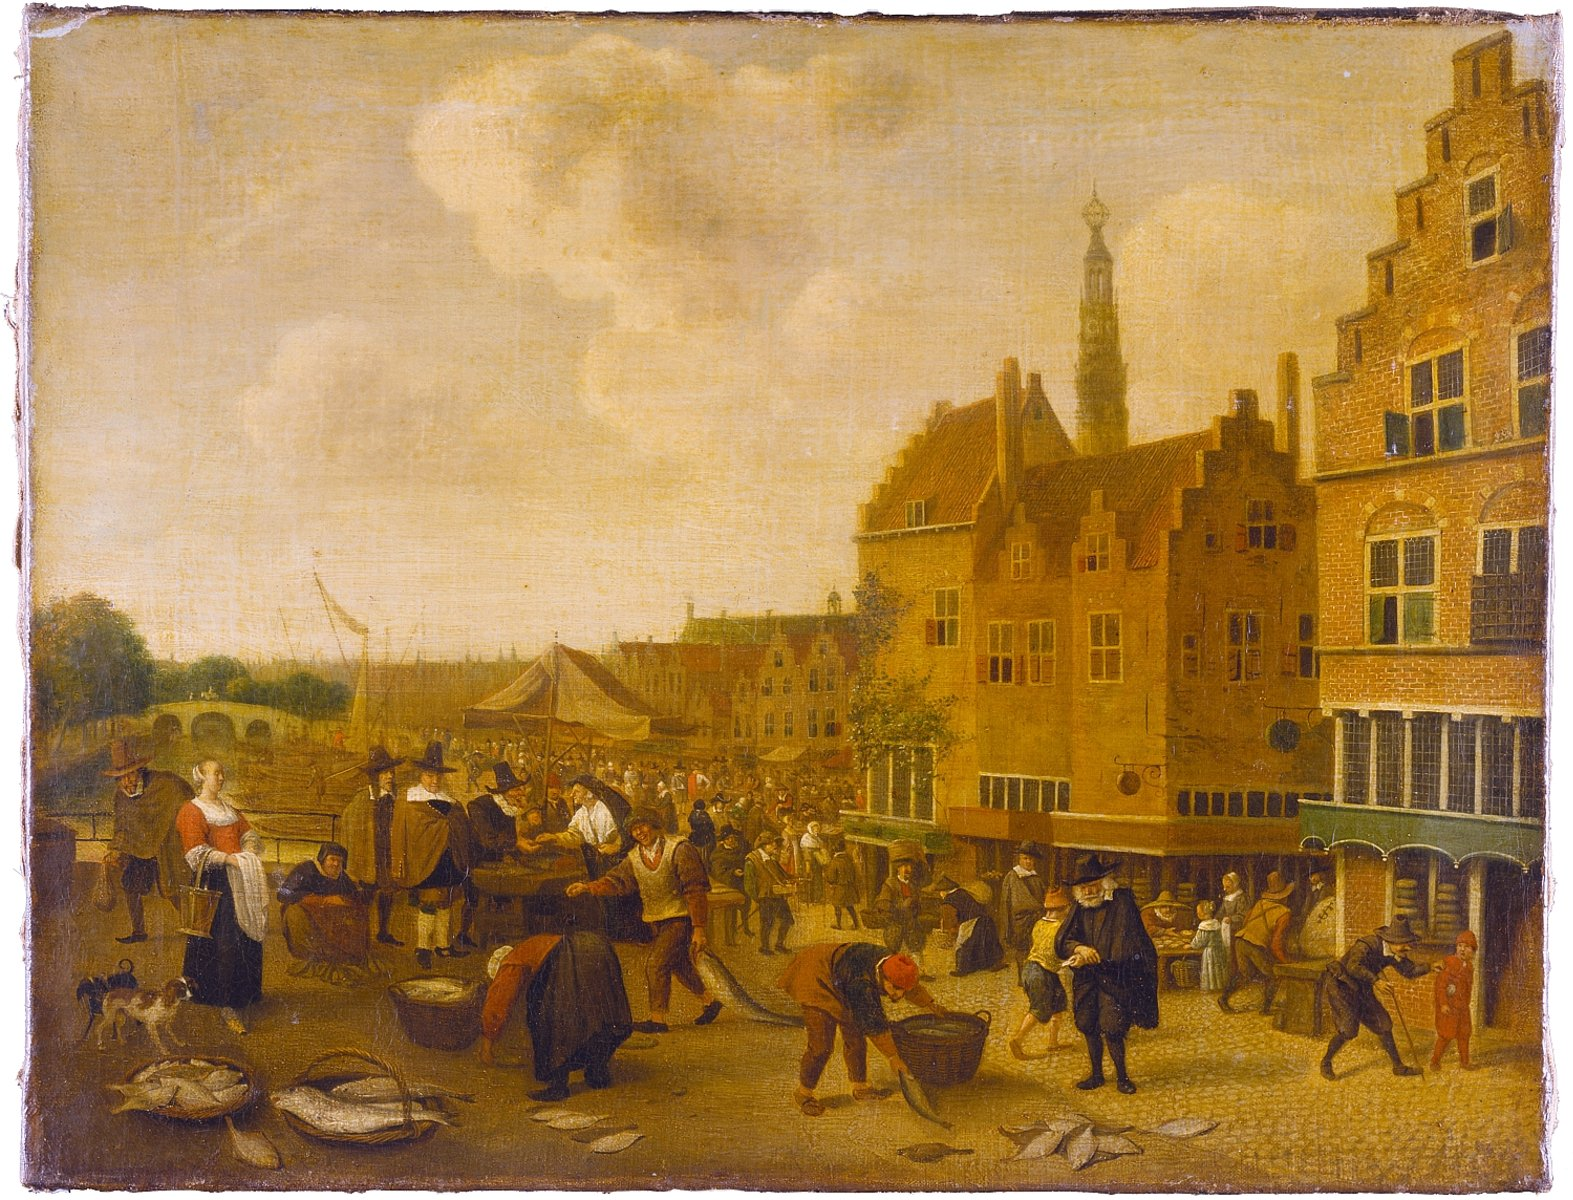 1132-jan_steen-fish_market_leyden-1646 lille